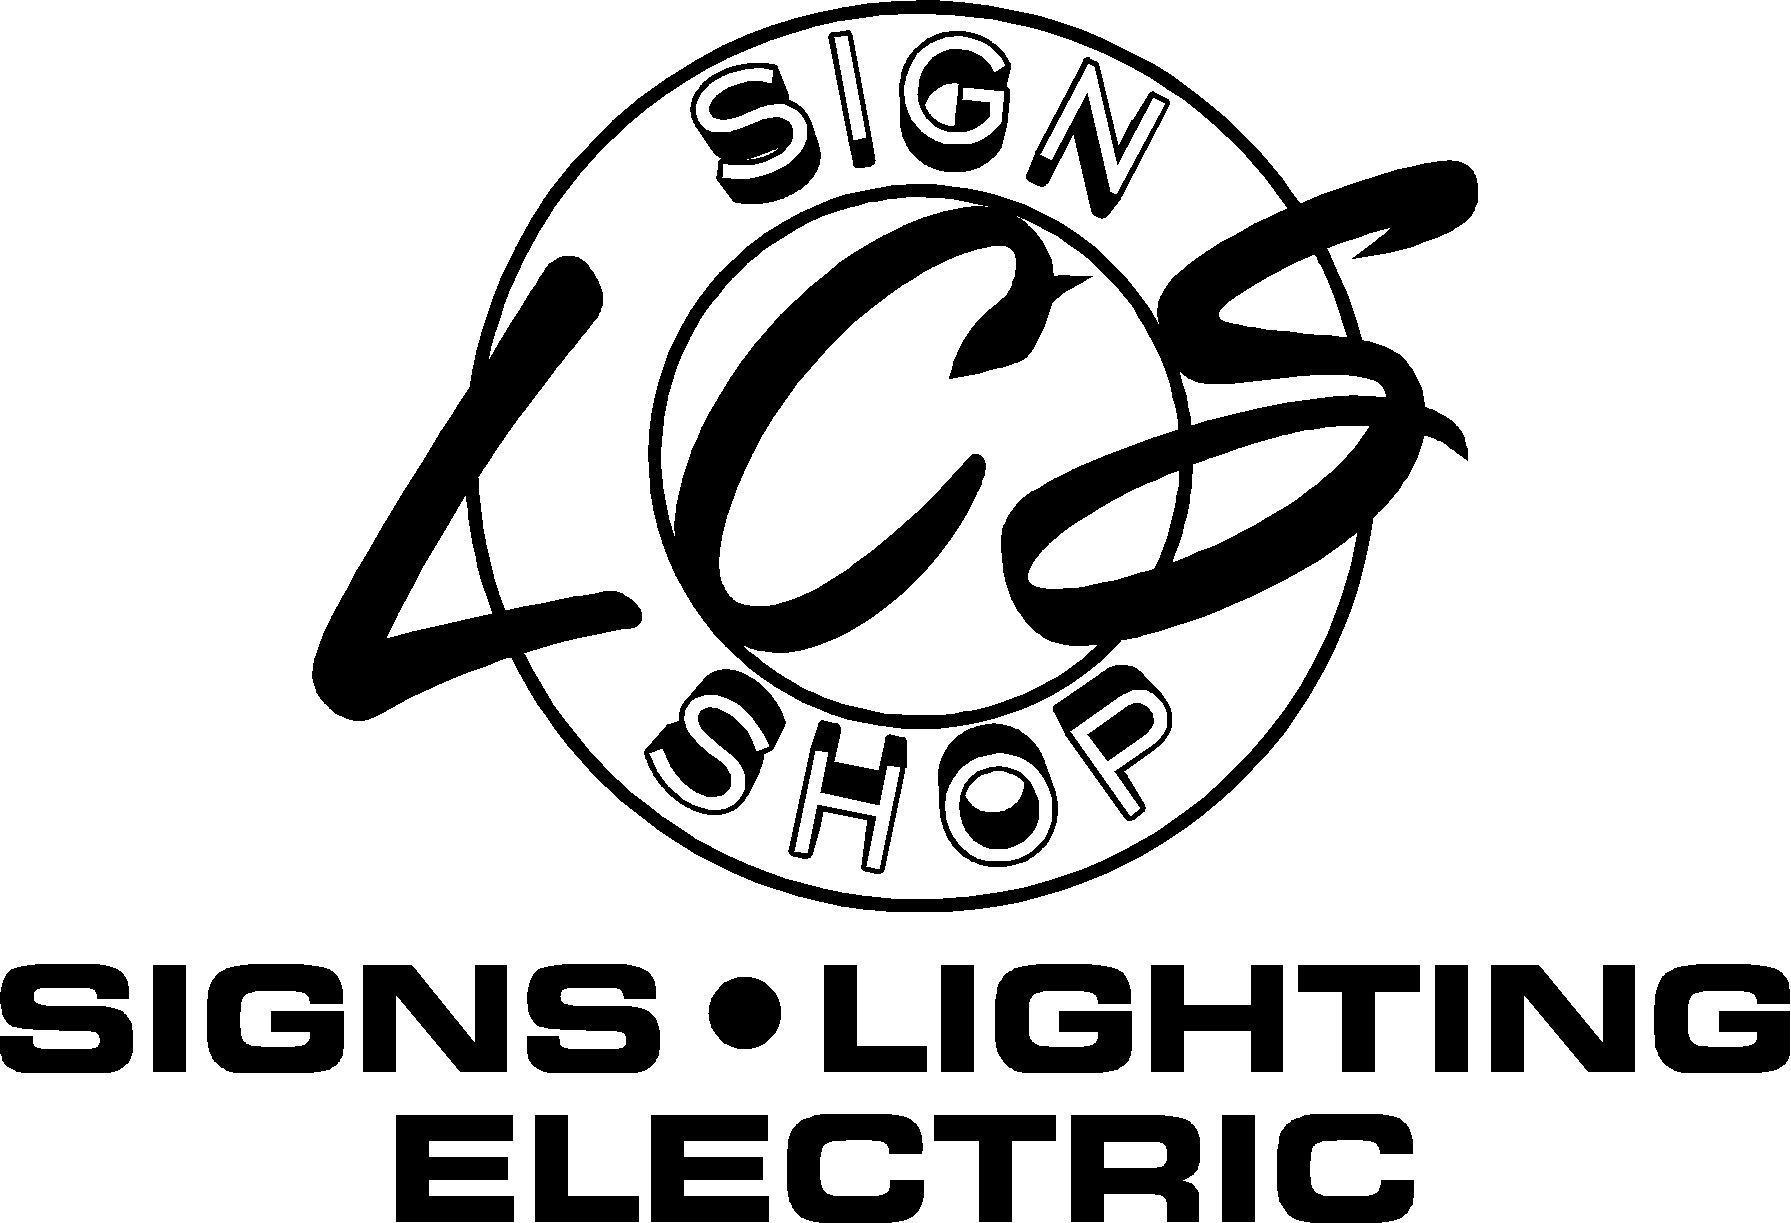 Lighting Contract Service Inc.